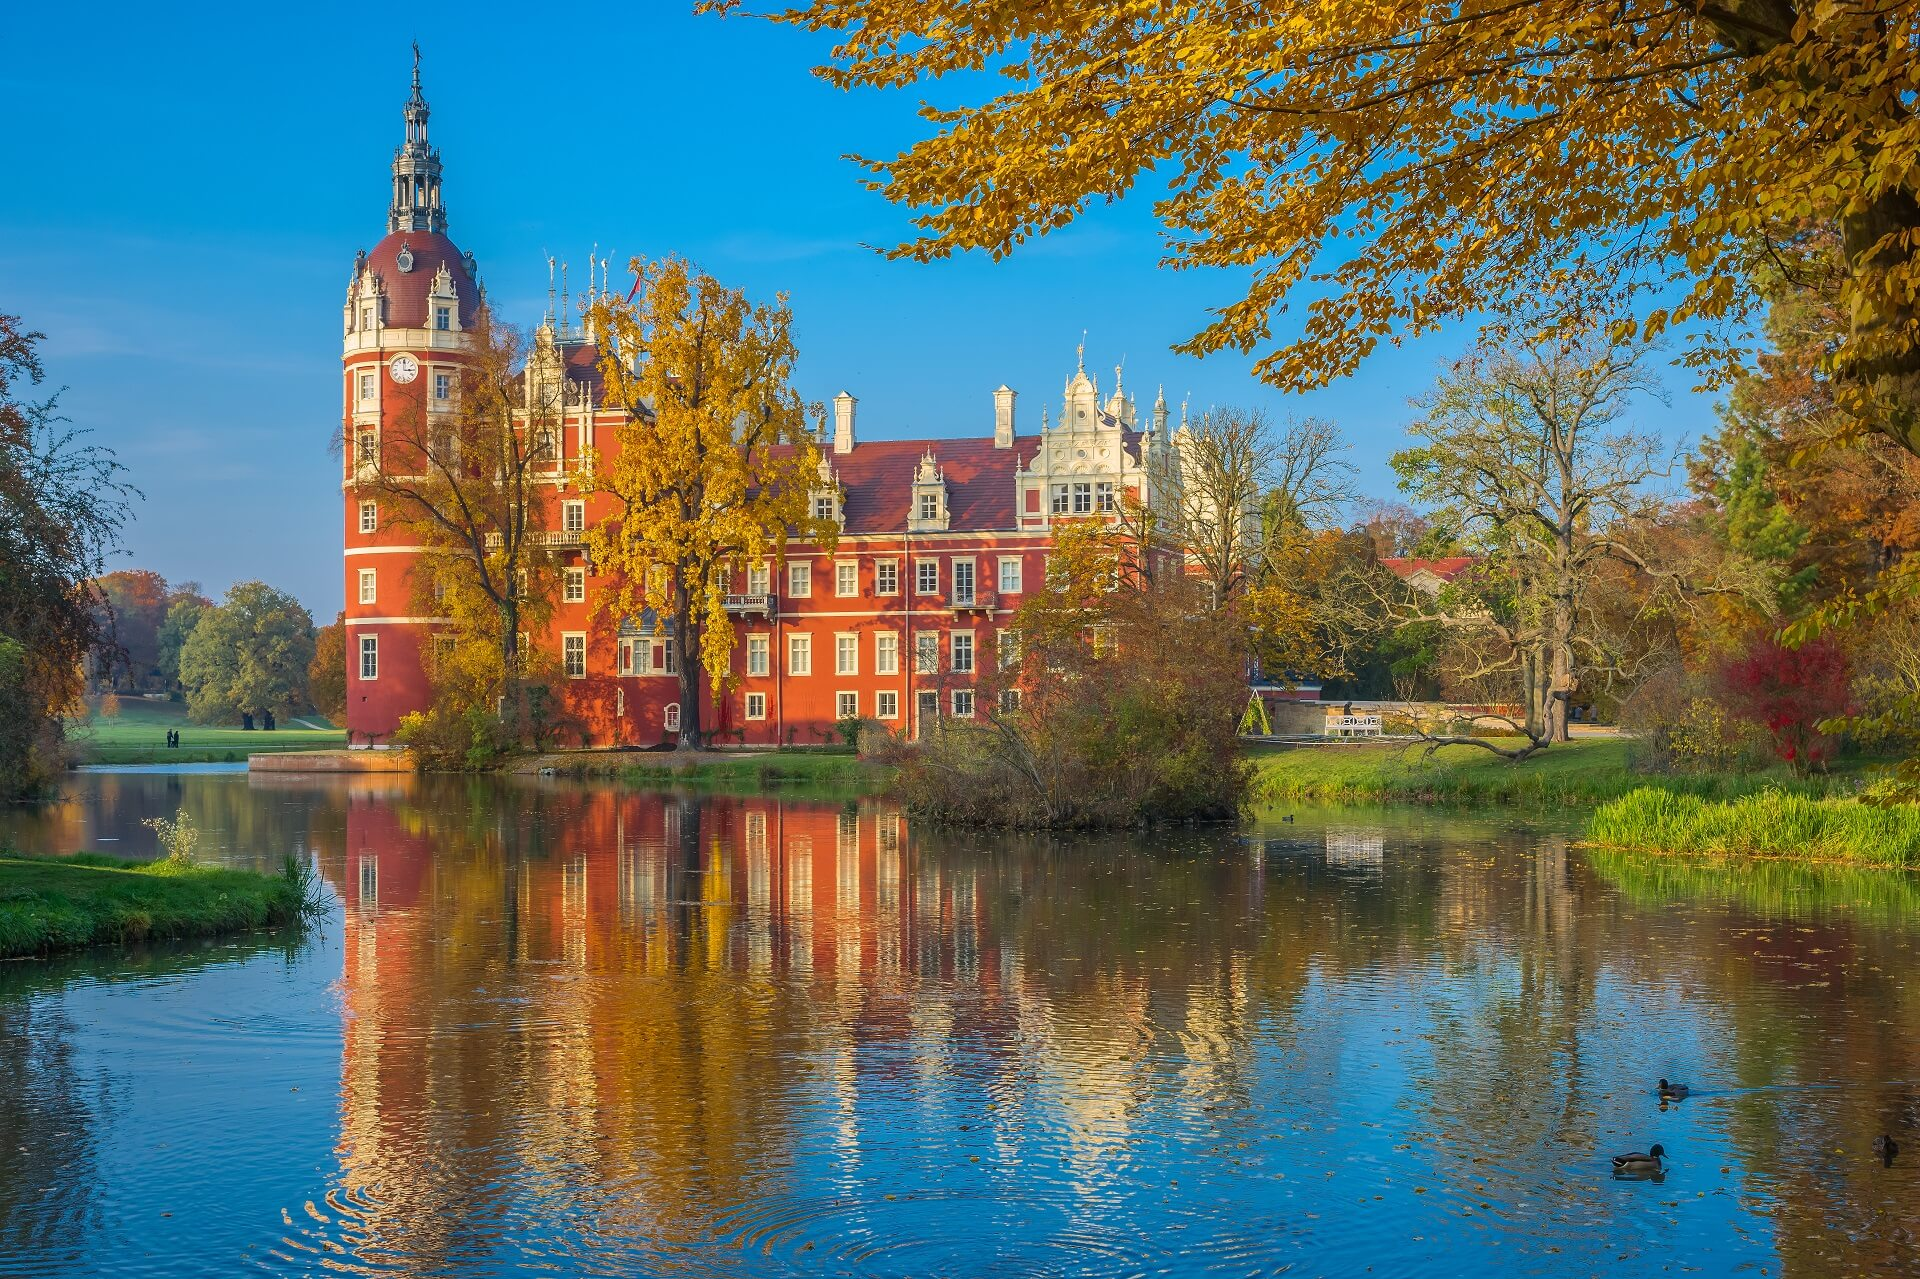 Fürst Pückler Schloss in Bad Muskau